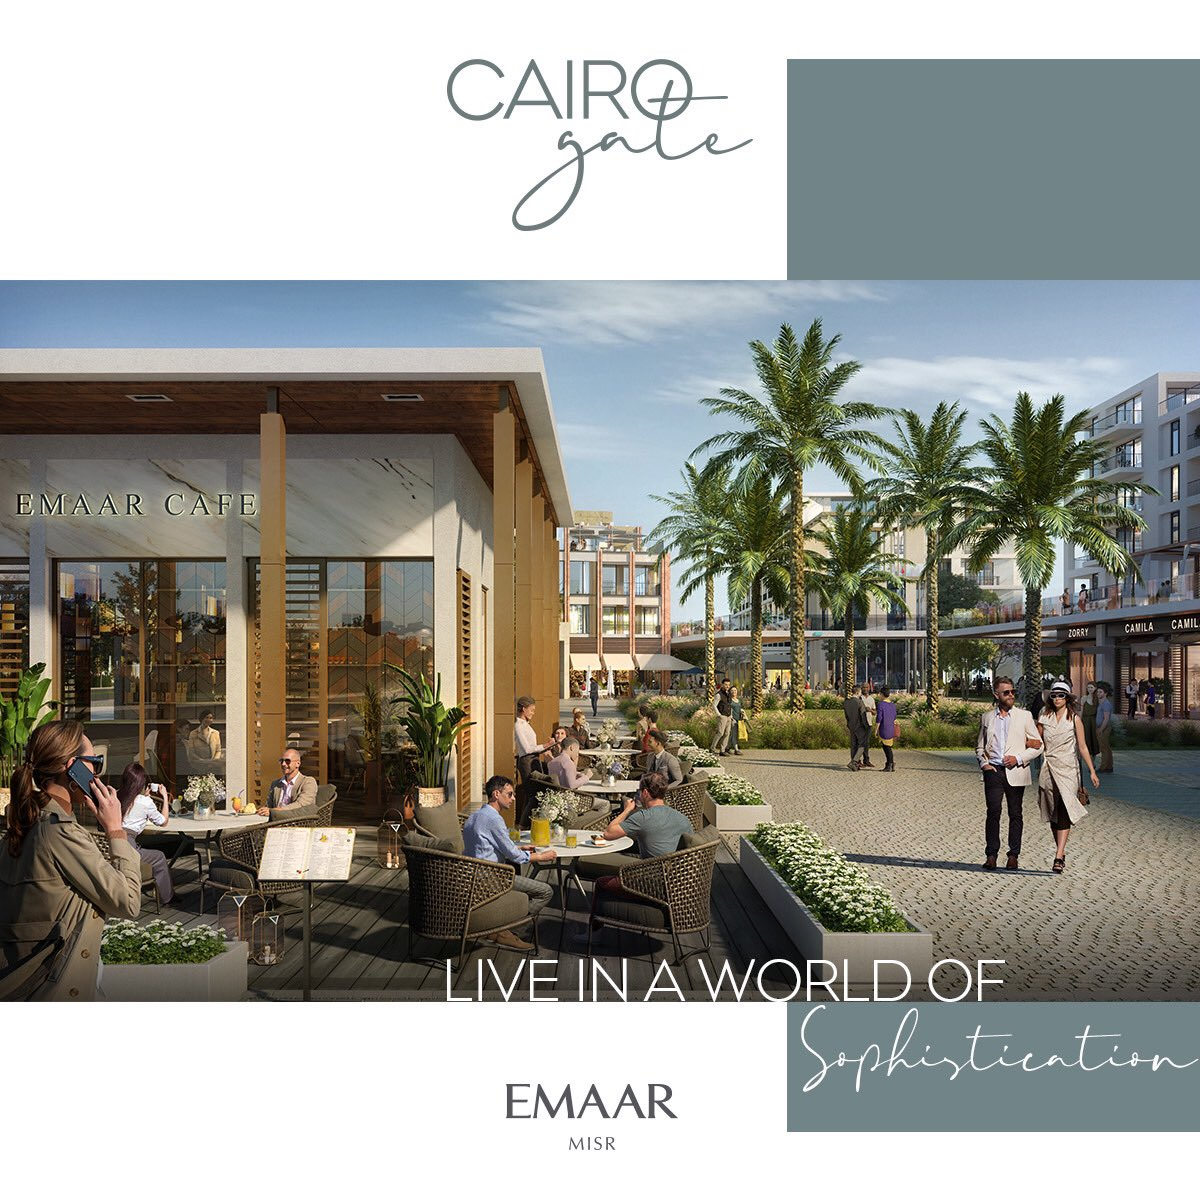 Cairo Gate offers you premium shopping outlets steps away from your home, where you enjoy a retail experience as unique as your signature.  #Emaar #EmaarMisr #CairoGate https://t.co/fO2zQG8FYO